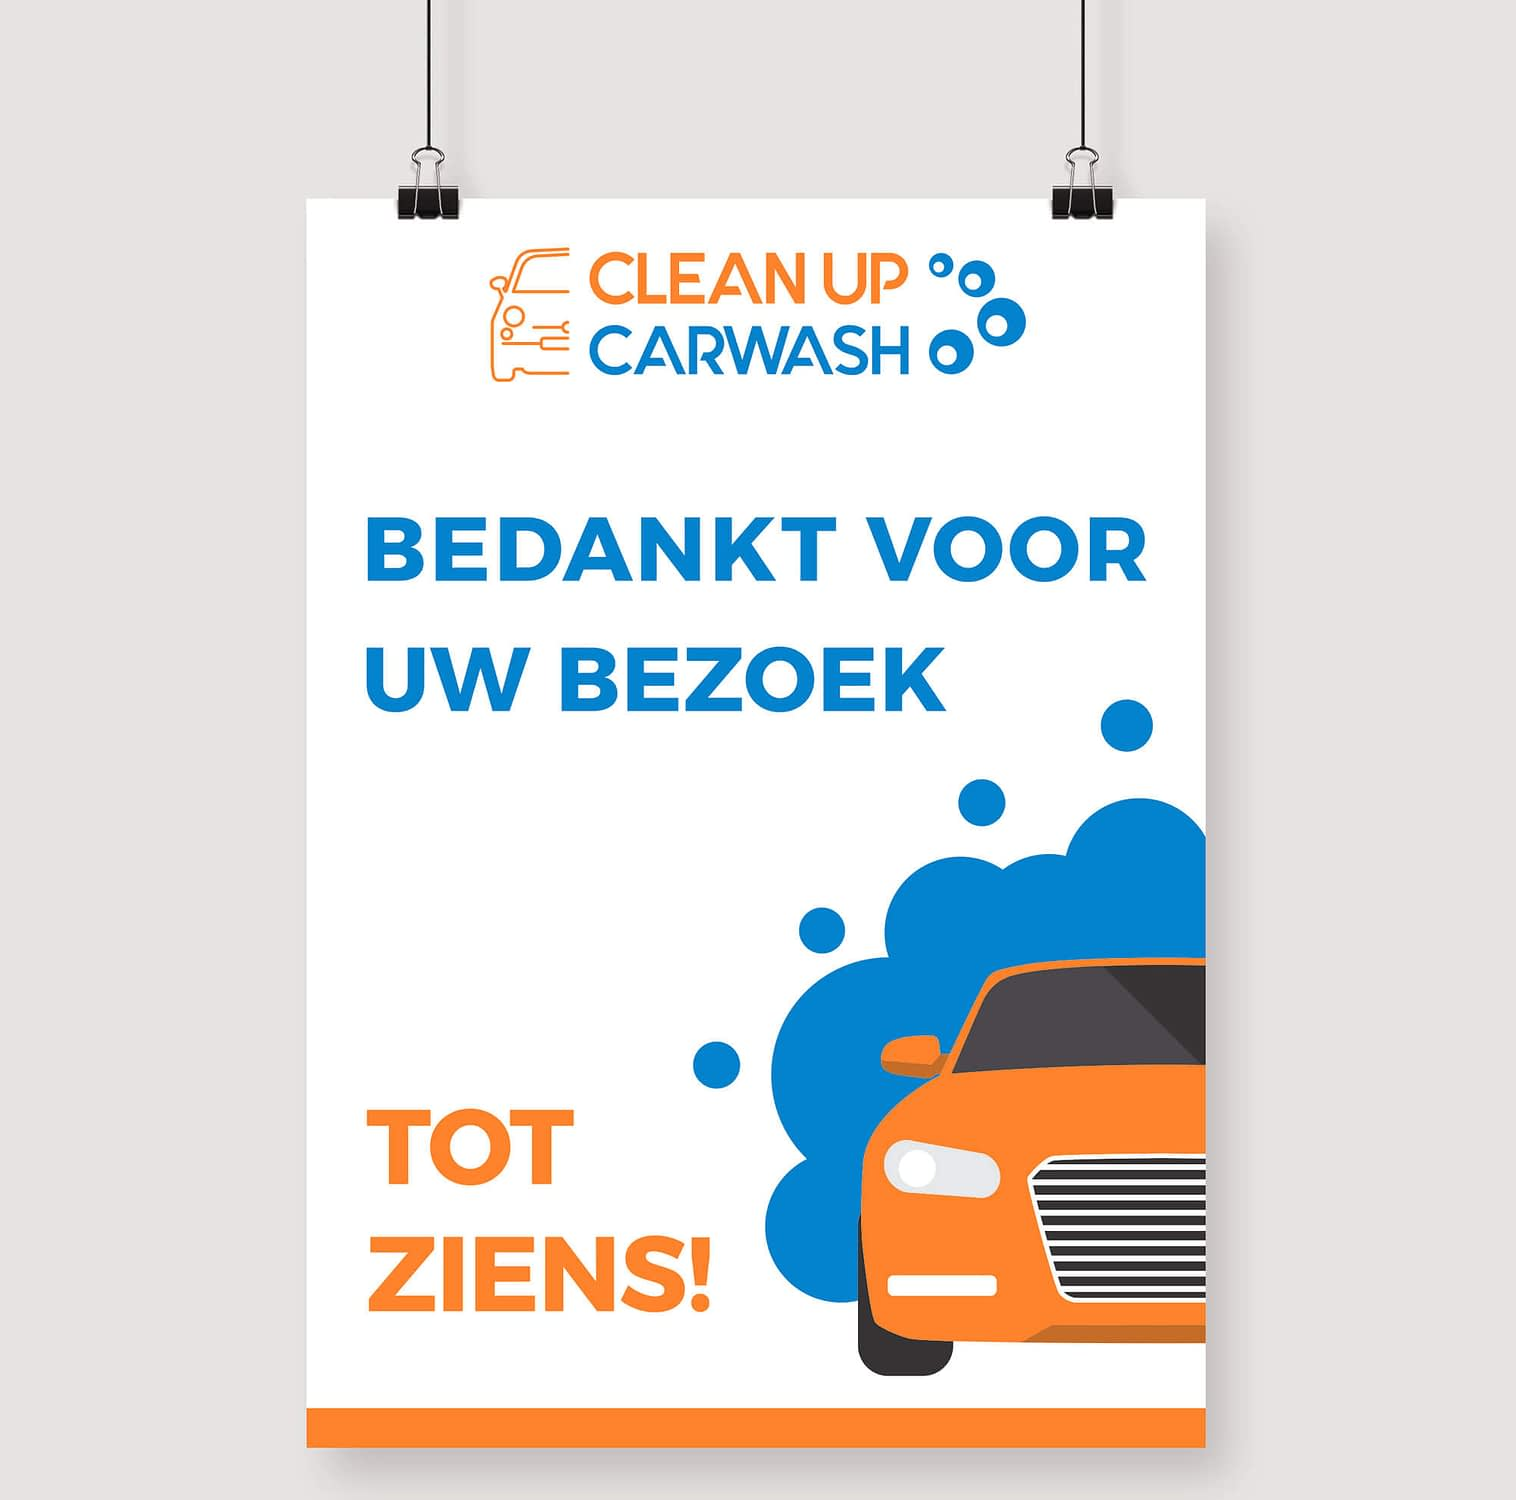 Carwash thank you for your visit poster design